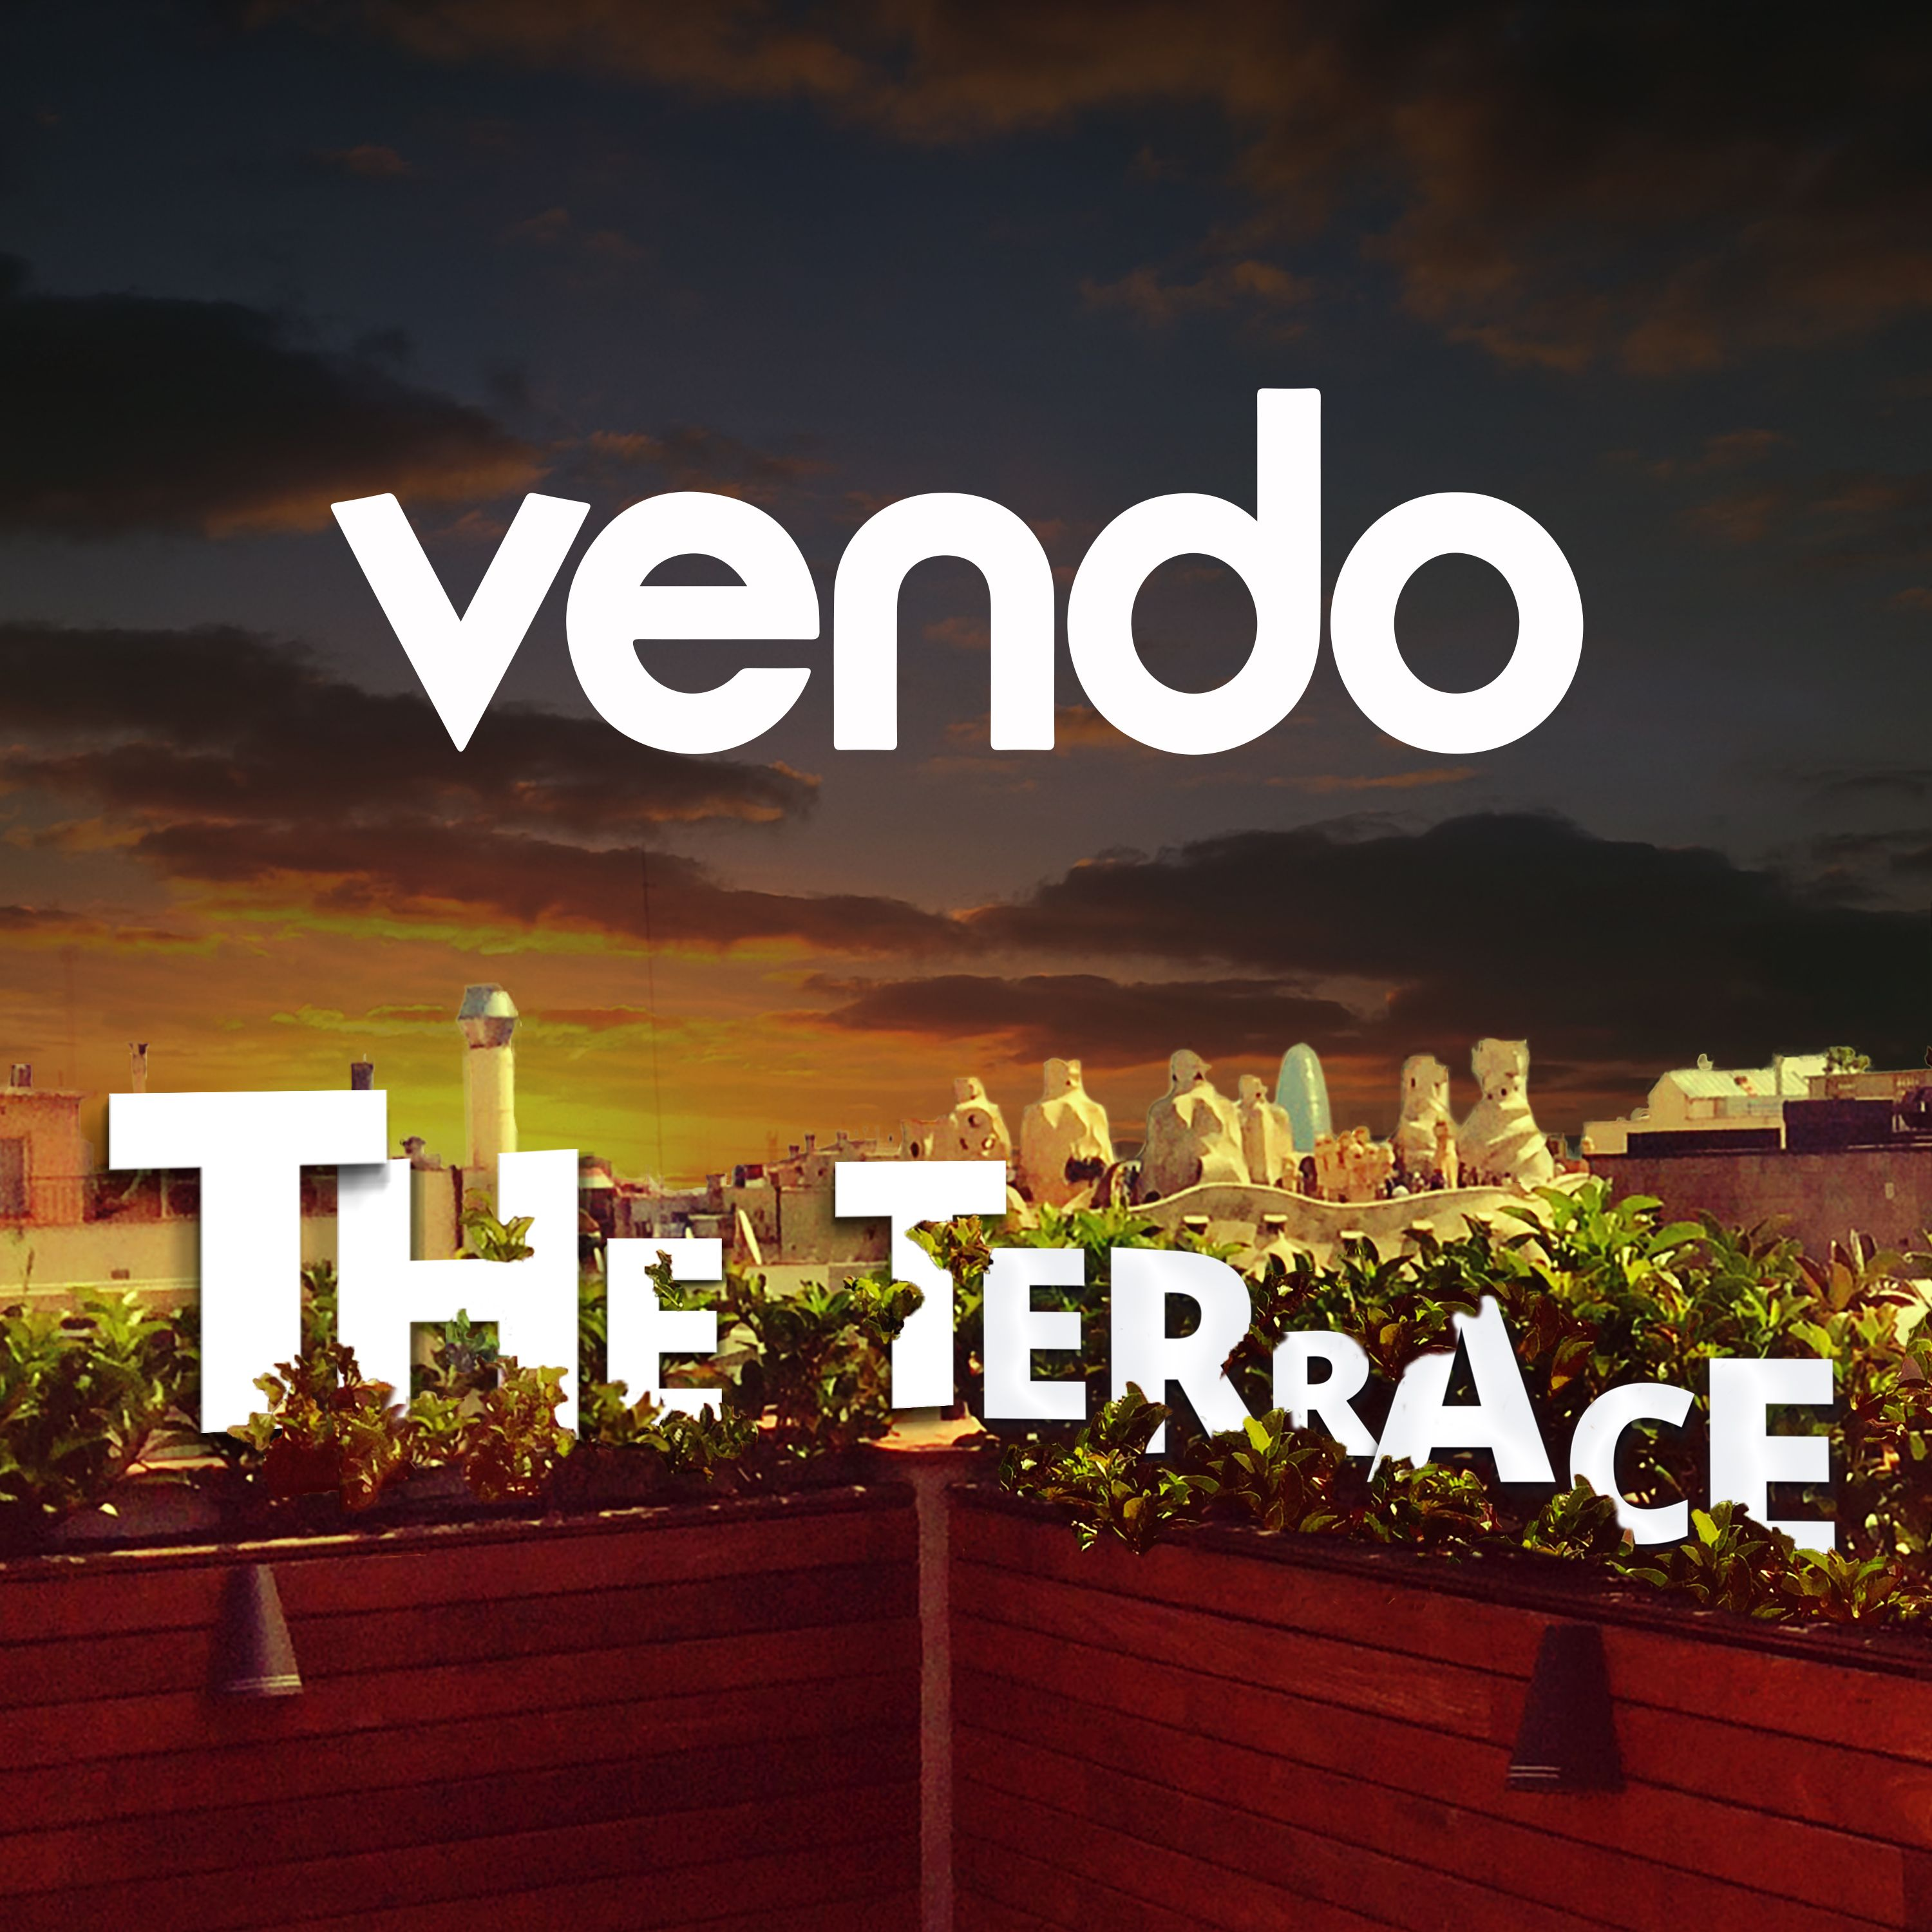 The Vendo Terrace